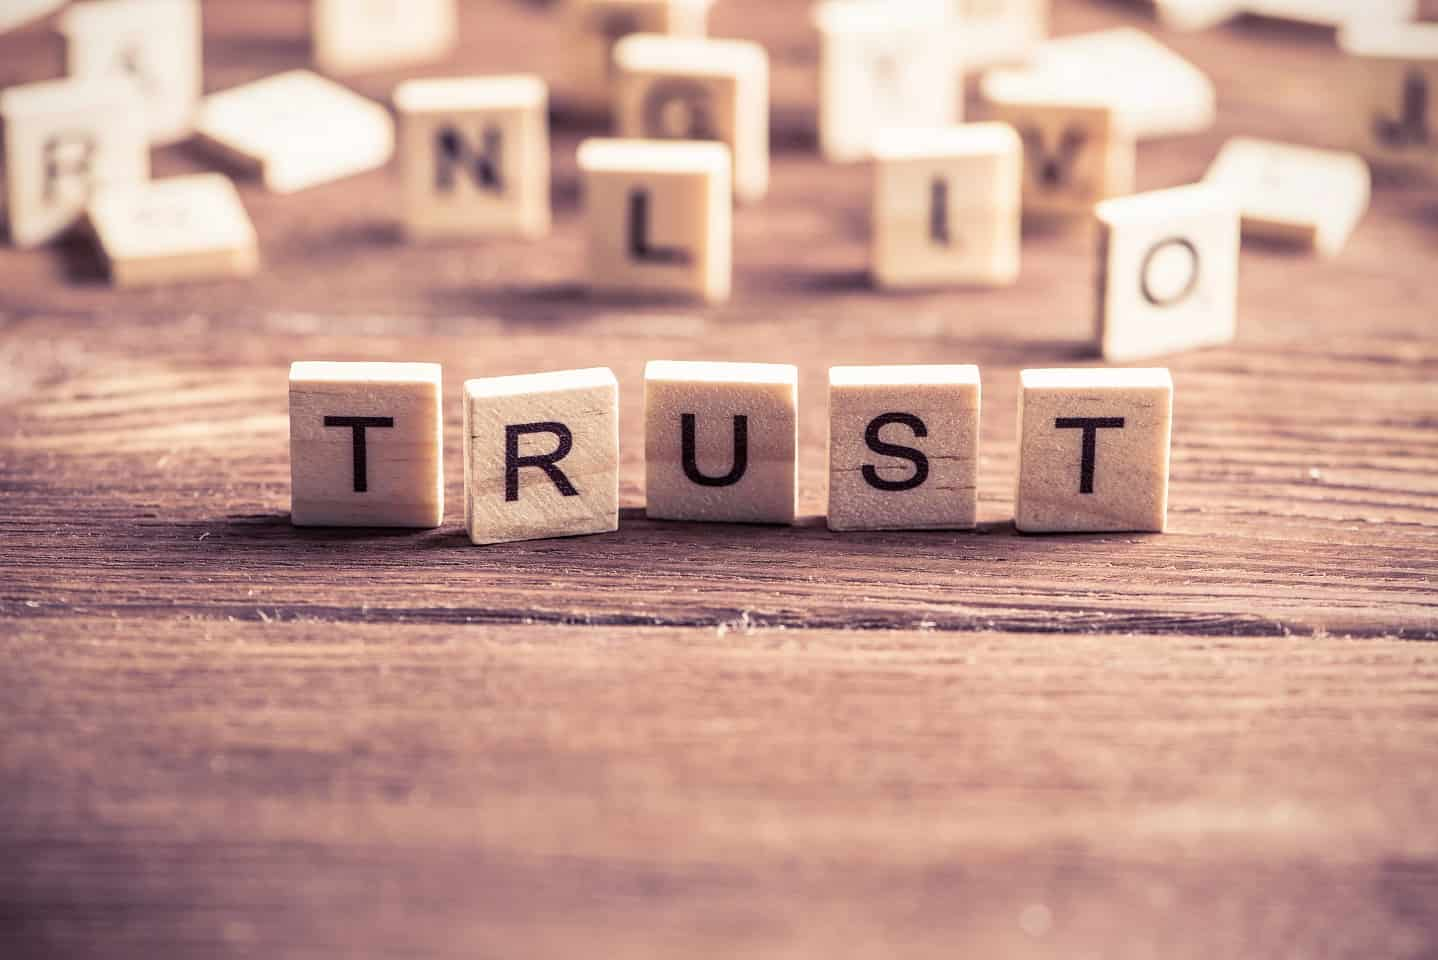 I TRUST YOU-What does it mean?